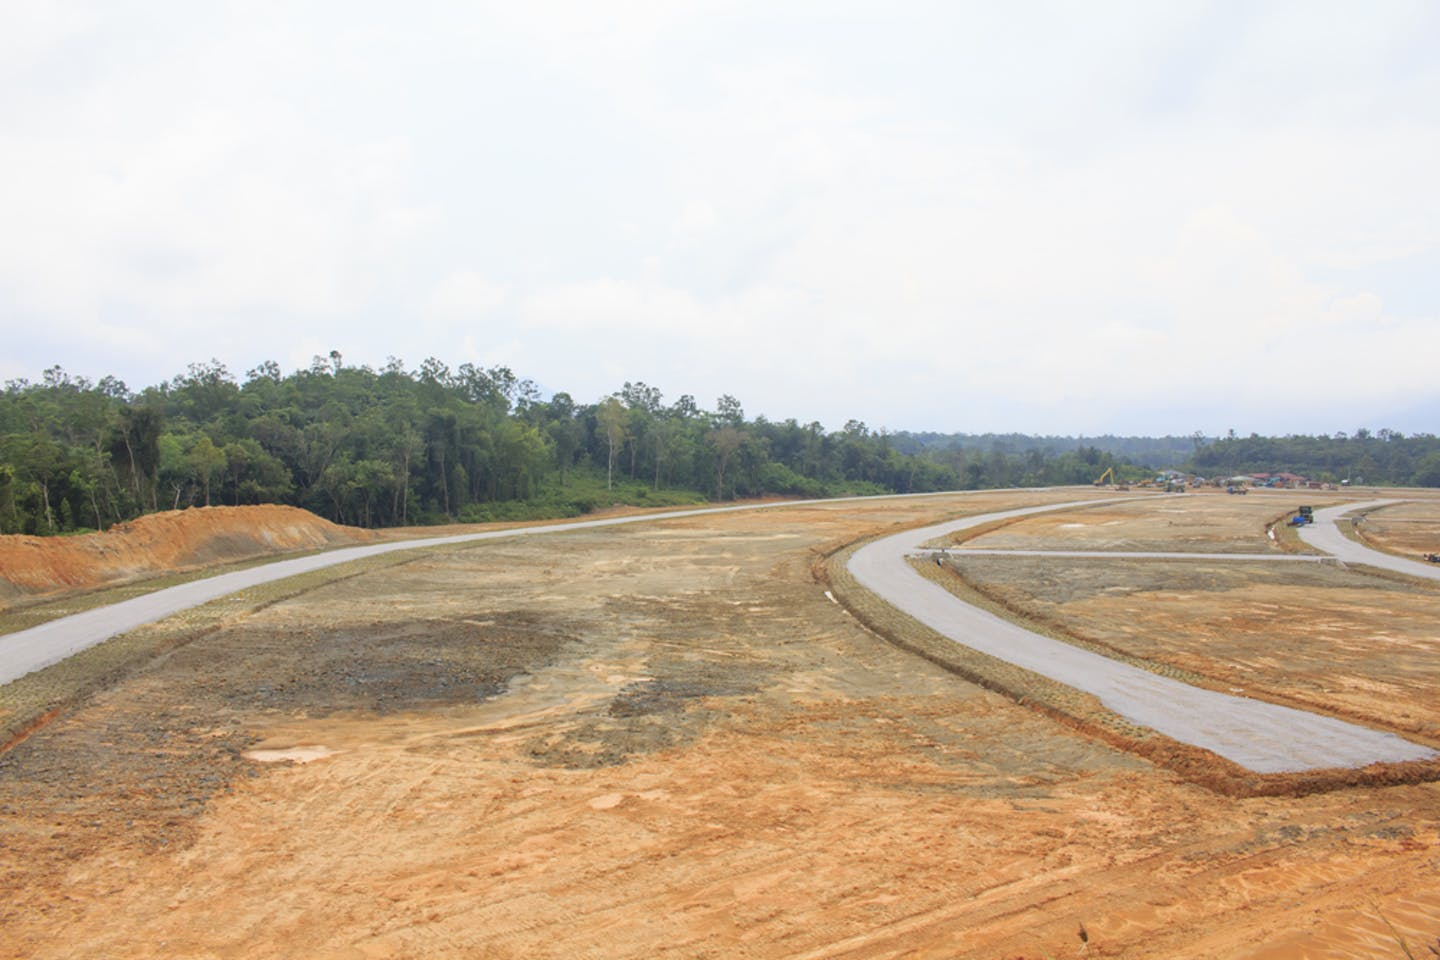 deforested land for palm oil